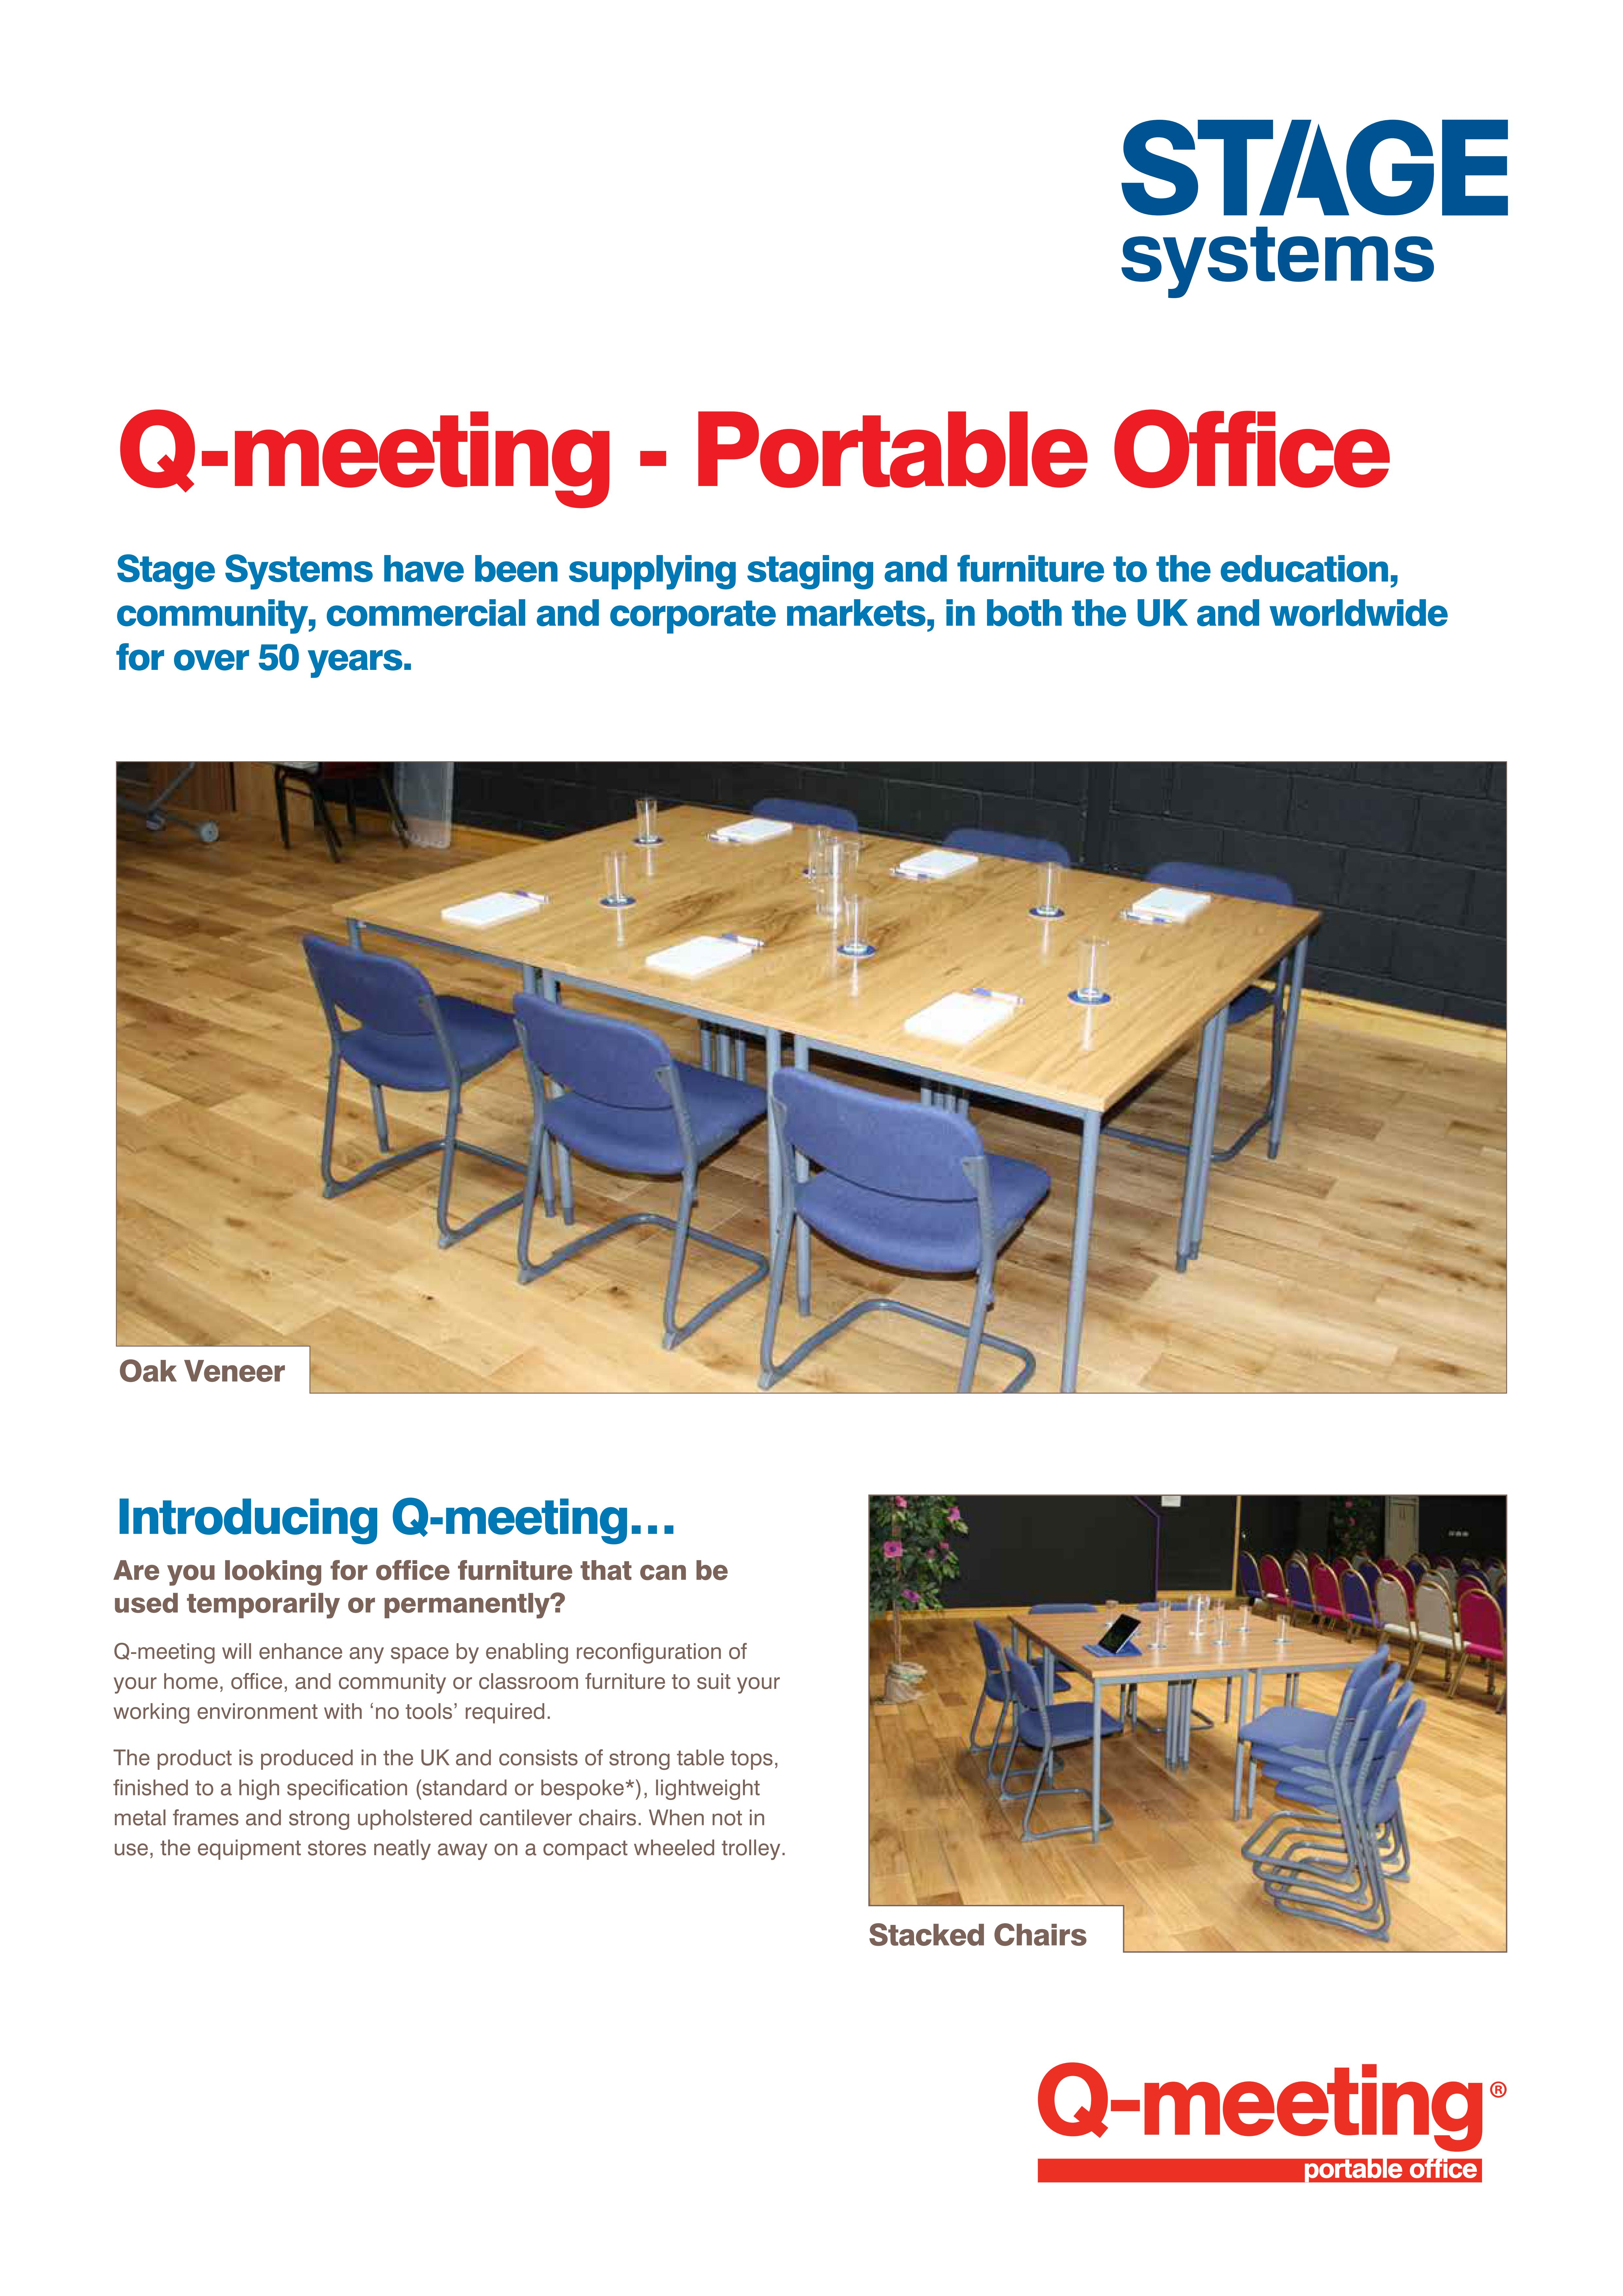 Q-meeting Portable Office Furniture